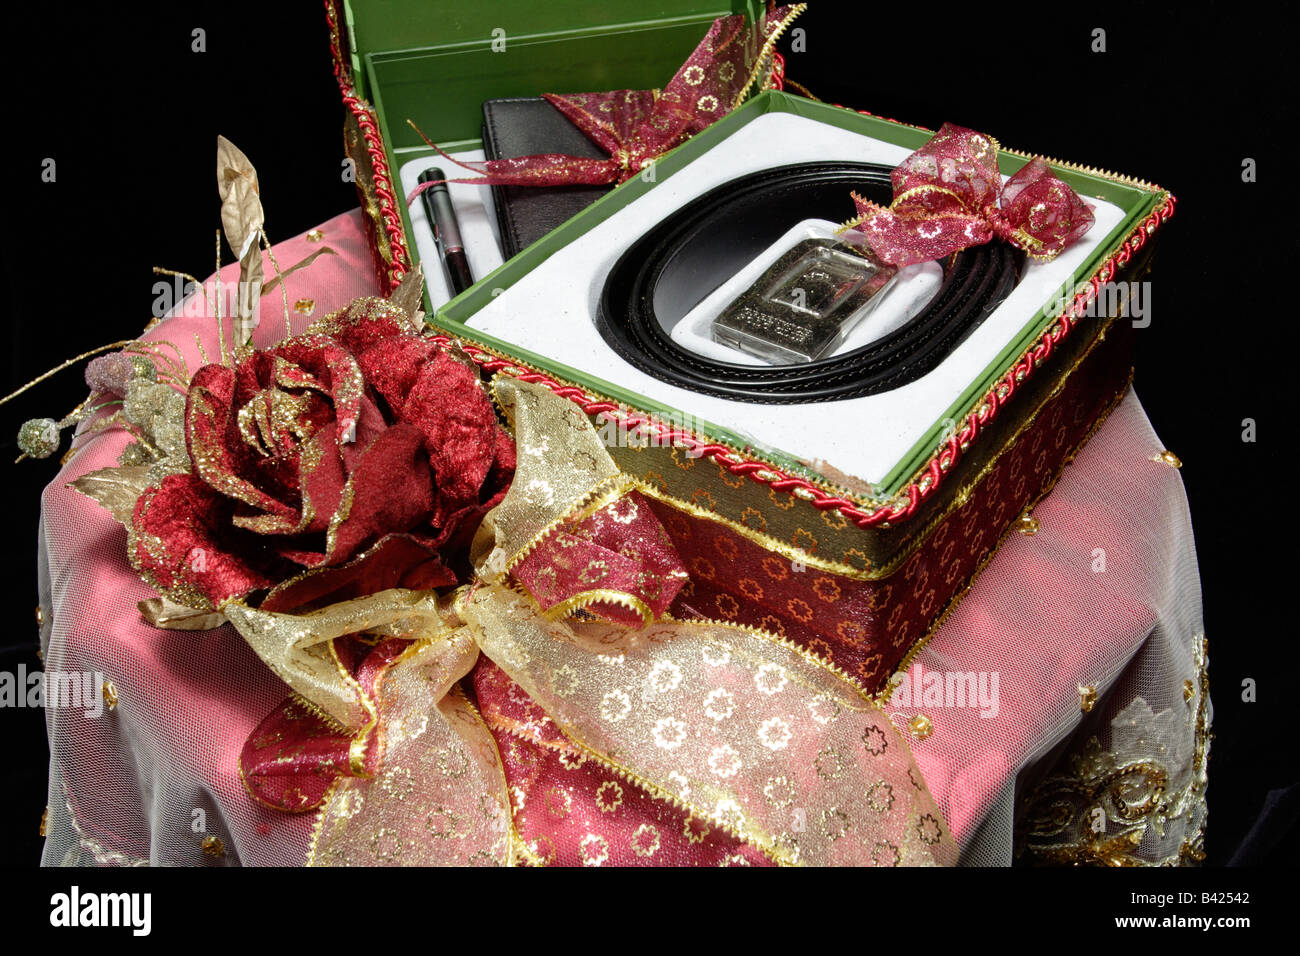 Wedding Gift Online Malaysia: Gift For A Malay Wedding In Malaysia Stock Photo, Royalty